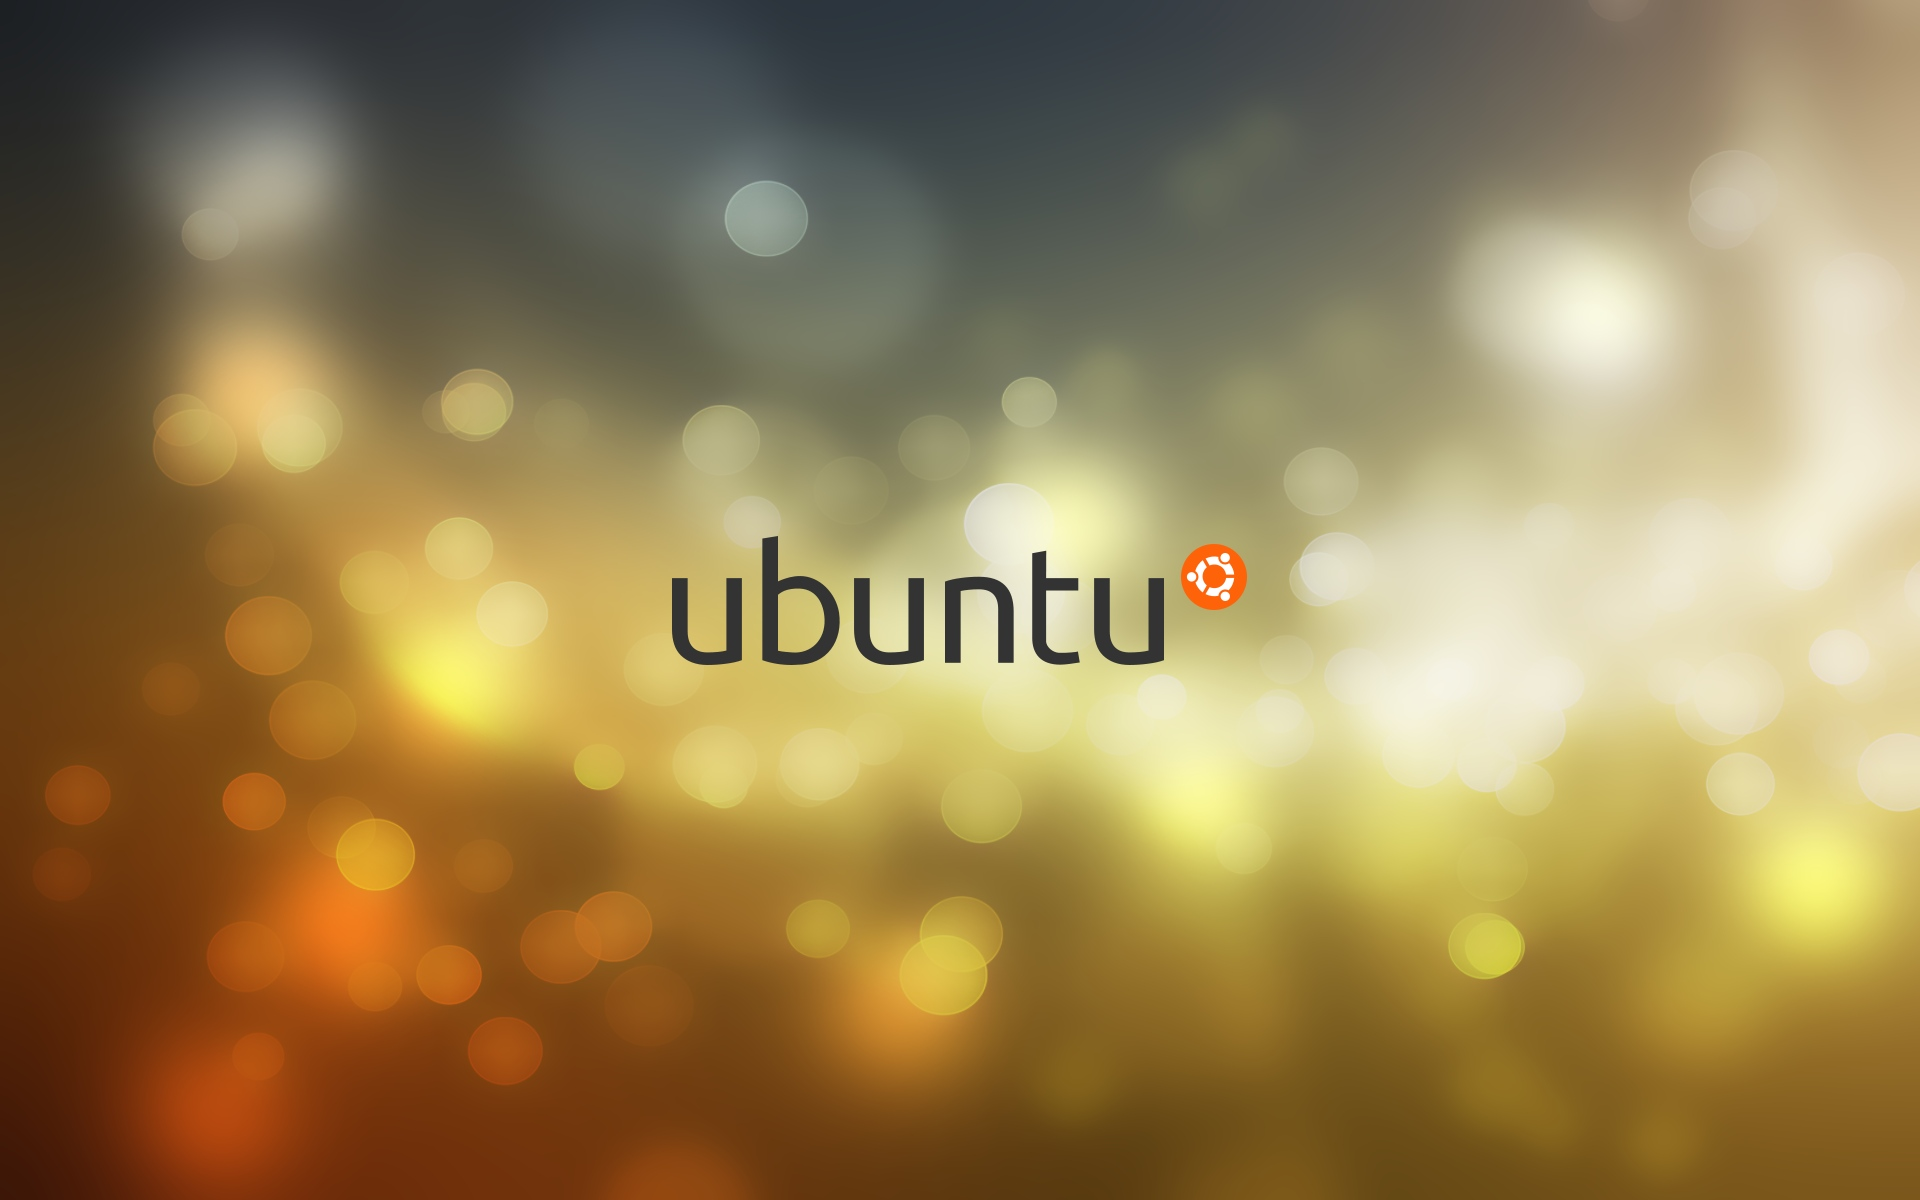 love ubuntu check out these amazing ubuntu goodies that you can buy 1920x1200